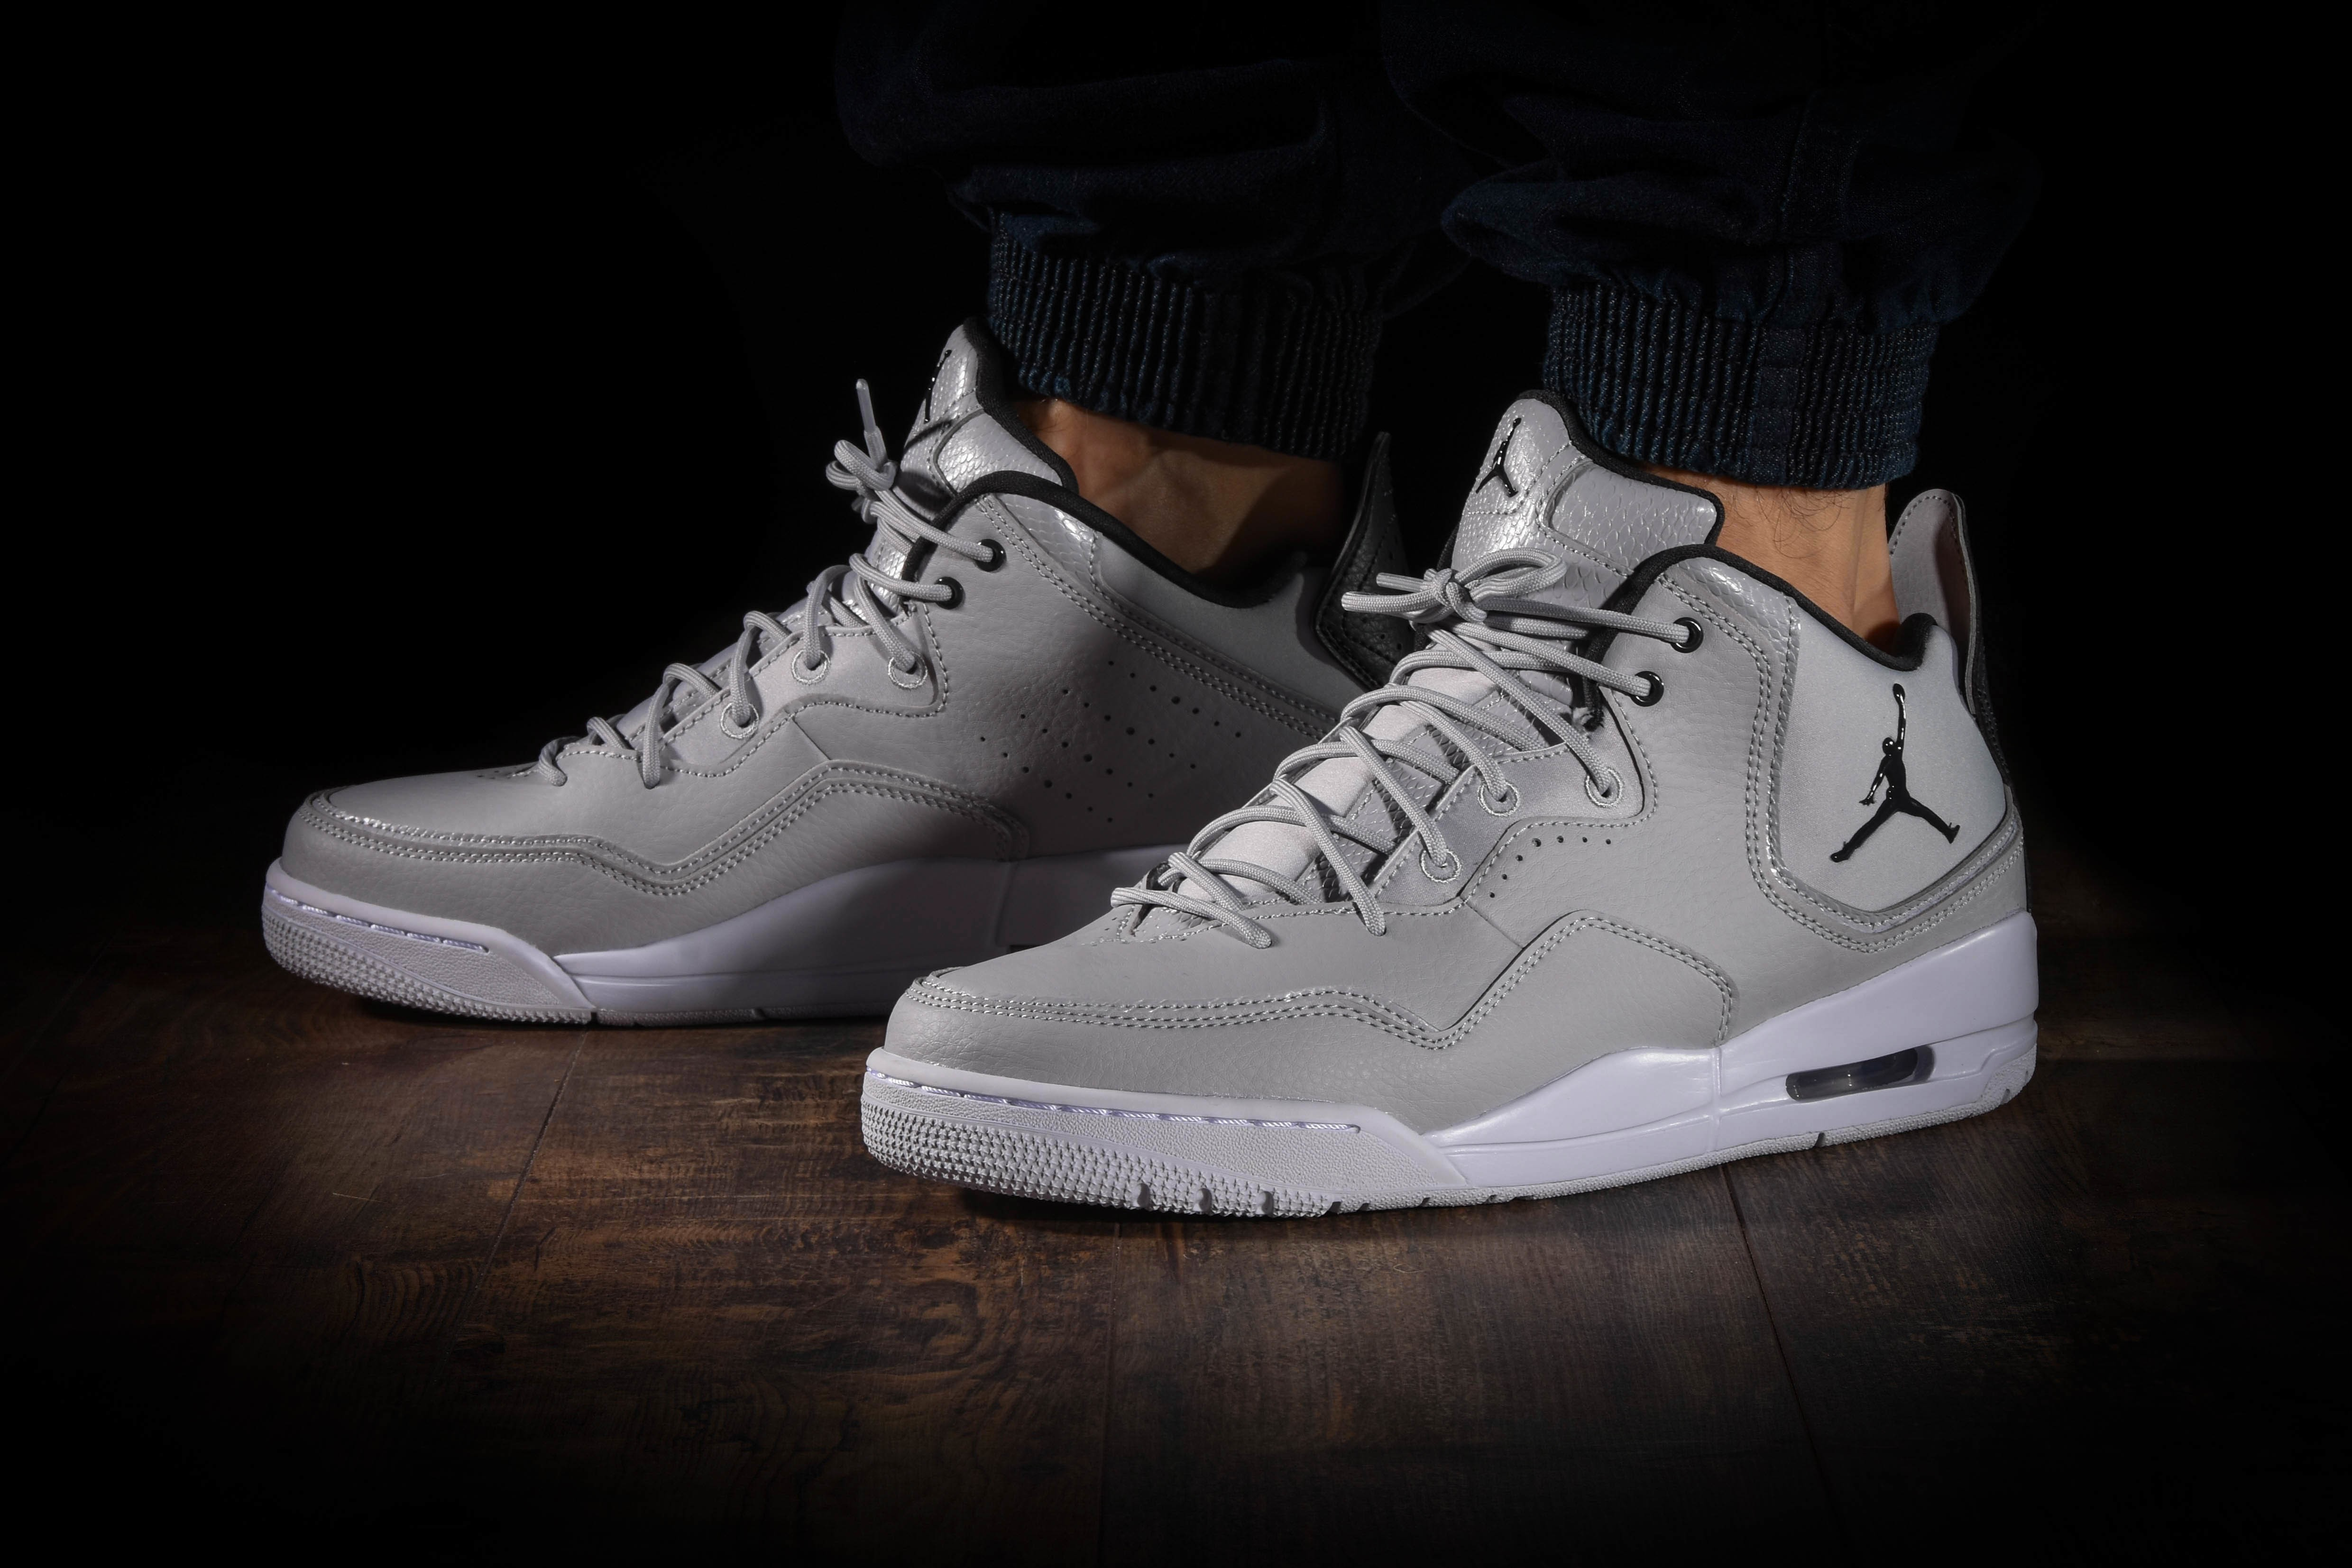 nike air jordan courtside 23 uomo